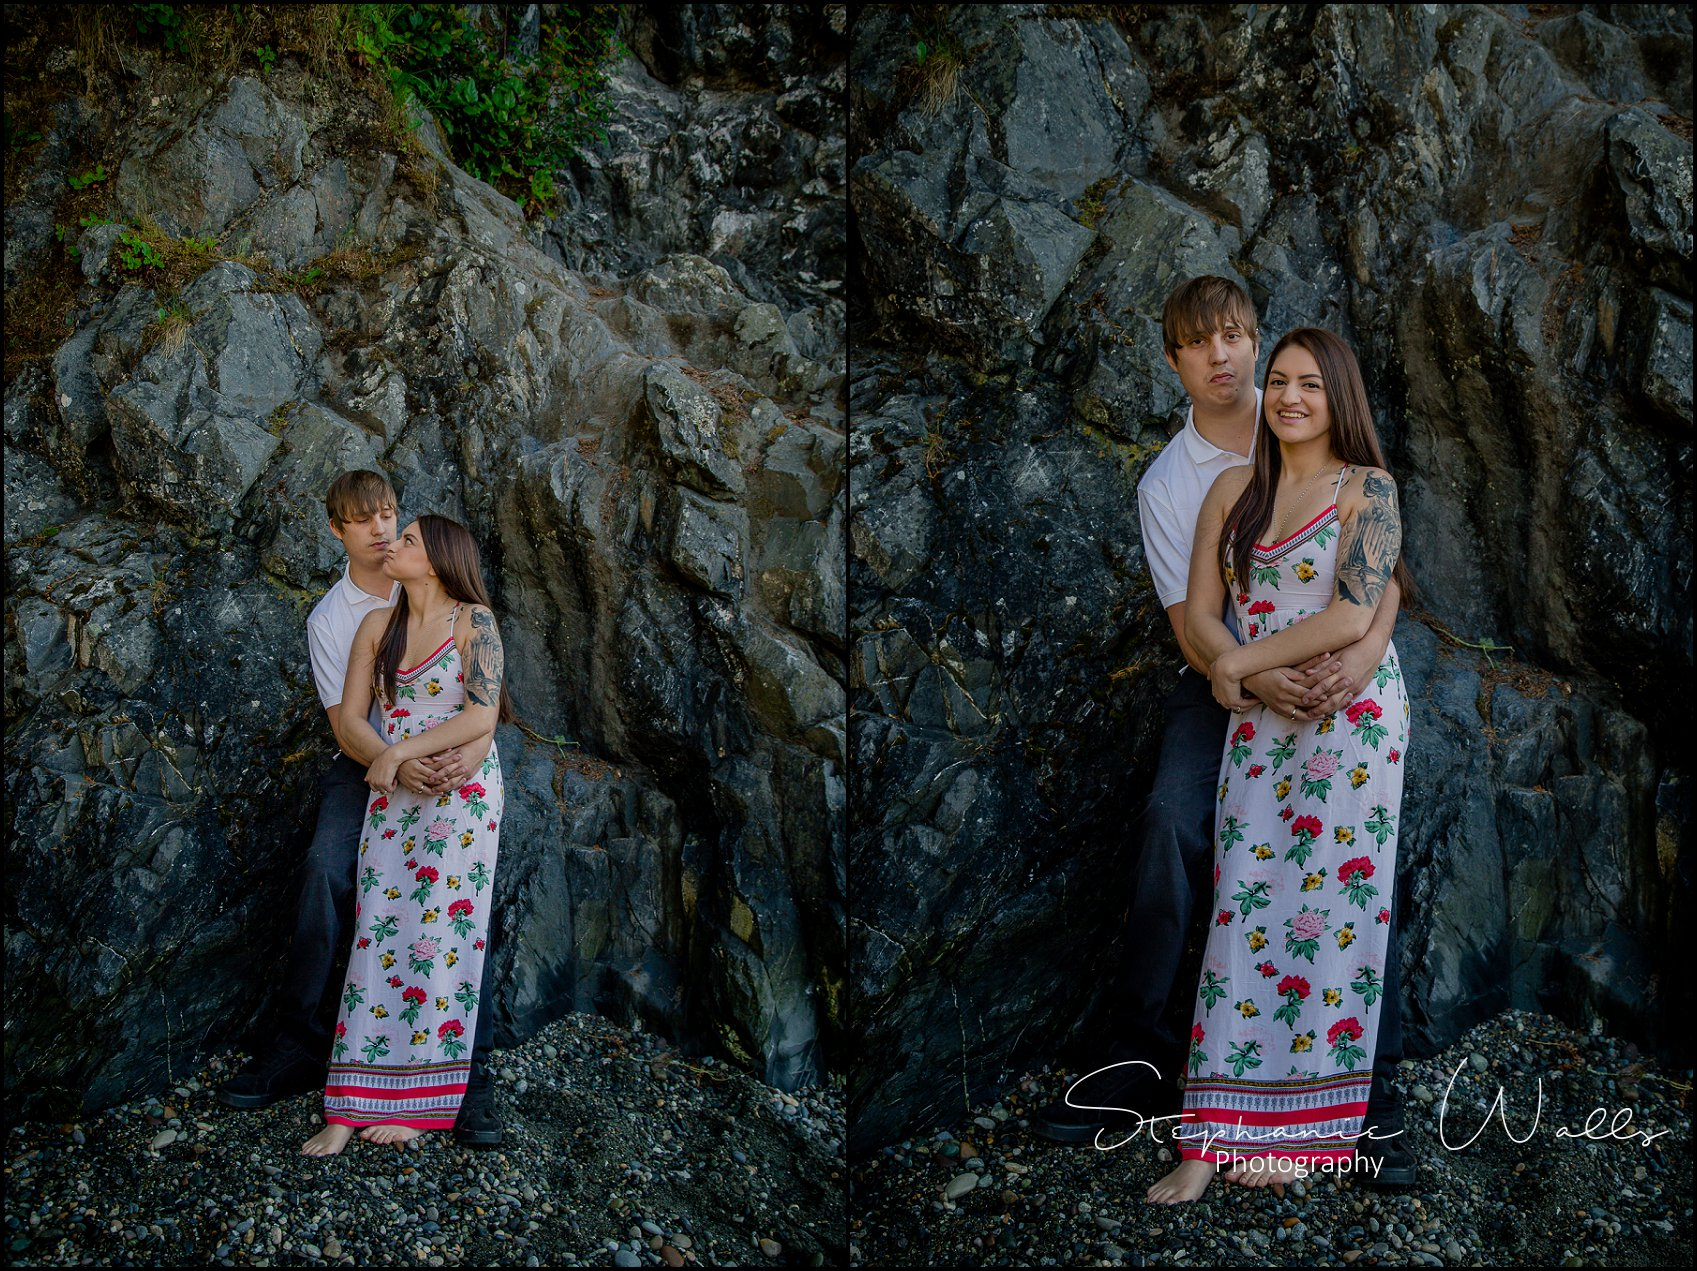 Nataly Marty015 IN A GALAXY FAR FAR AWAY | NATALY & MARTY | DECEPTION PASS ENGAGEMENT SESSION